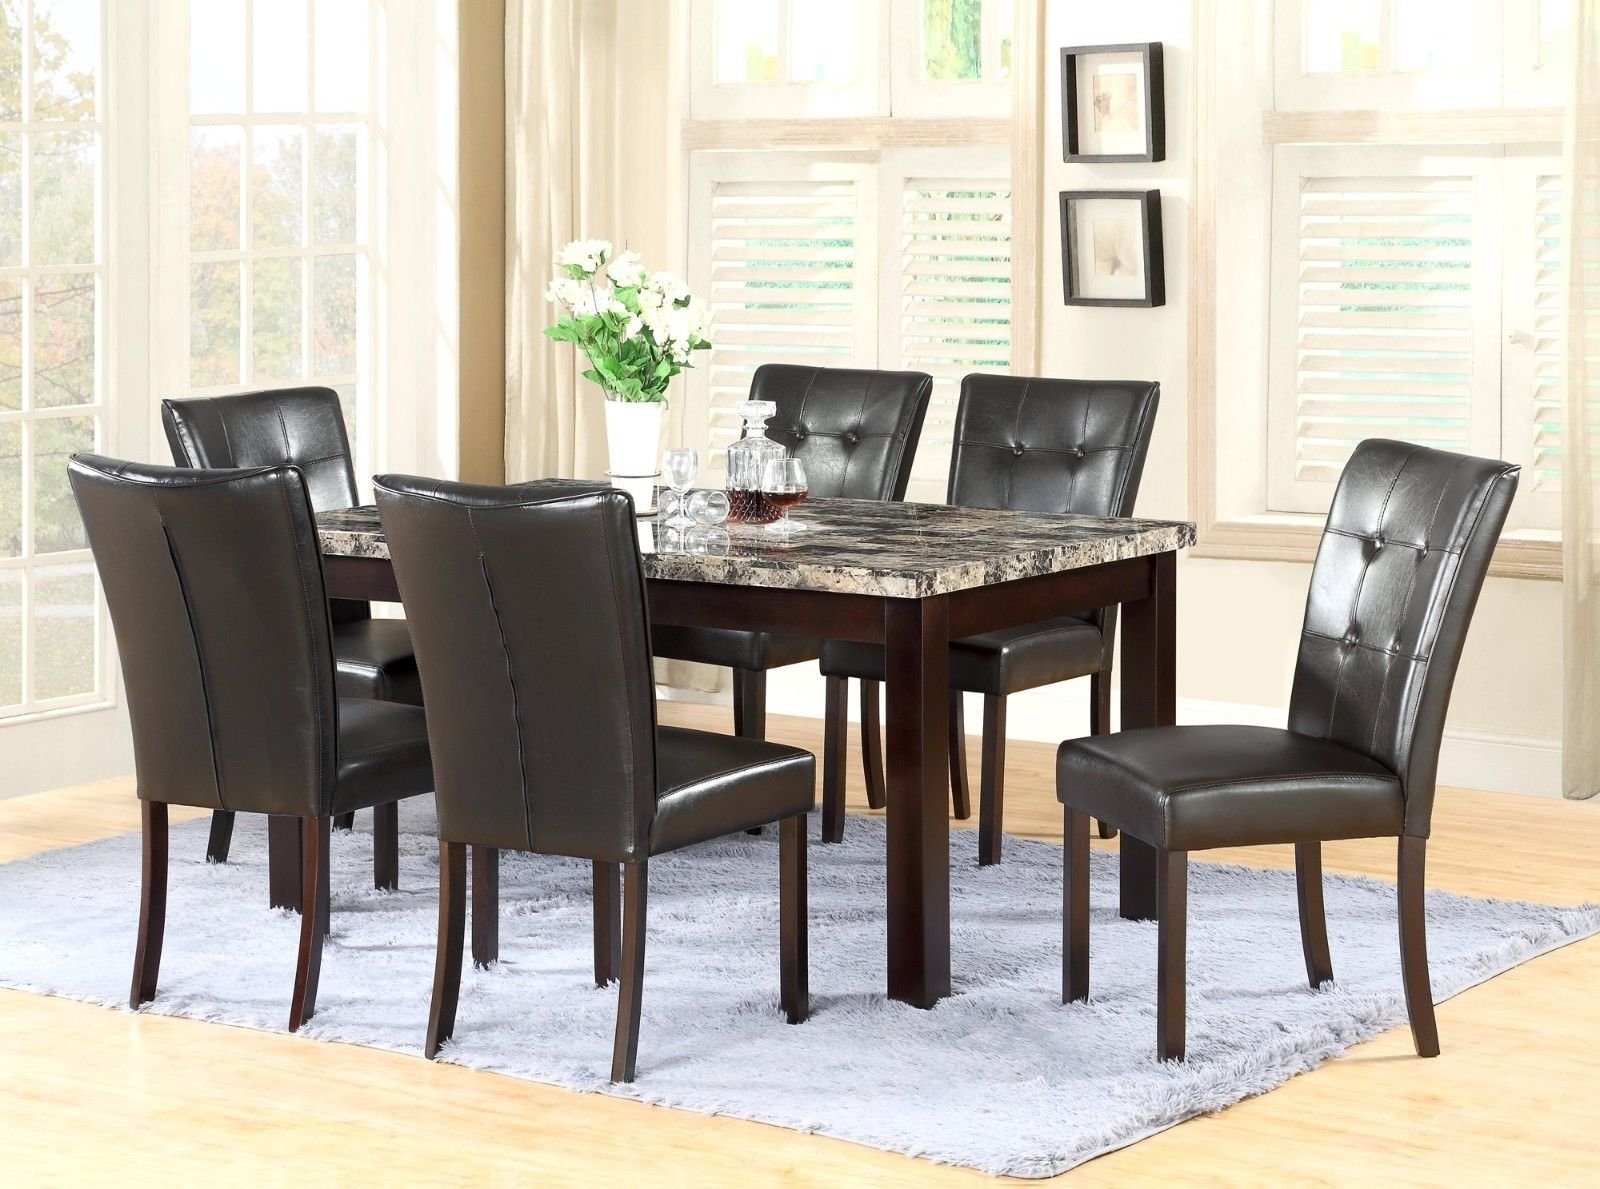 Gtu Furniture 7 Piece 64x38 Dining Room Kitchen Table Set With Faux